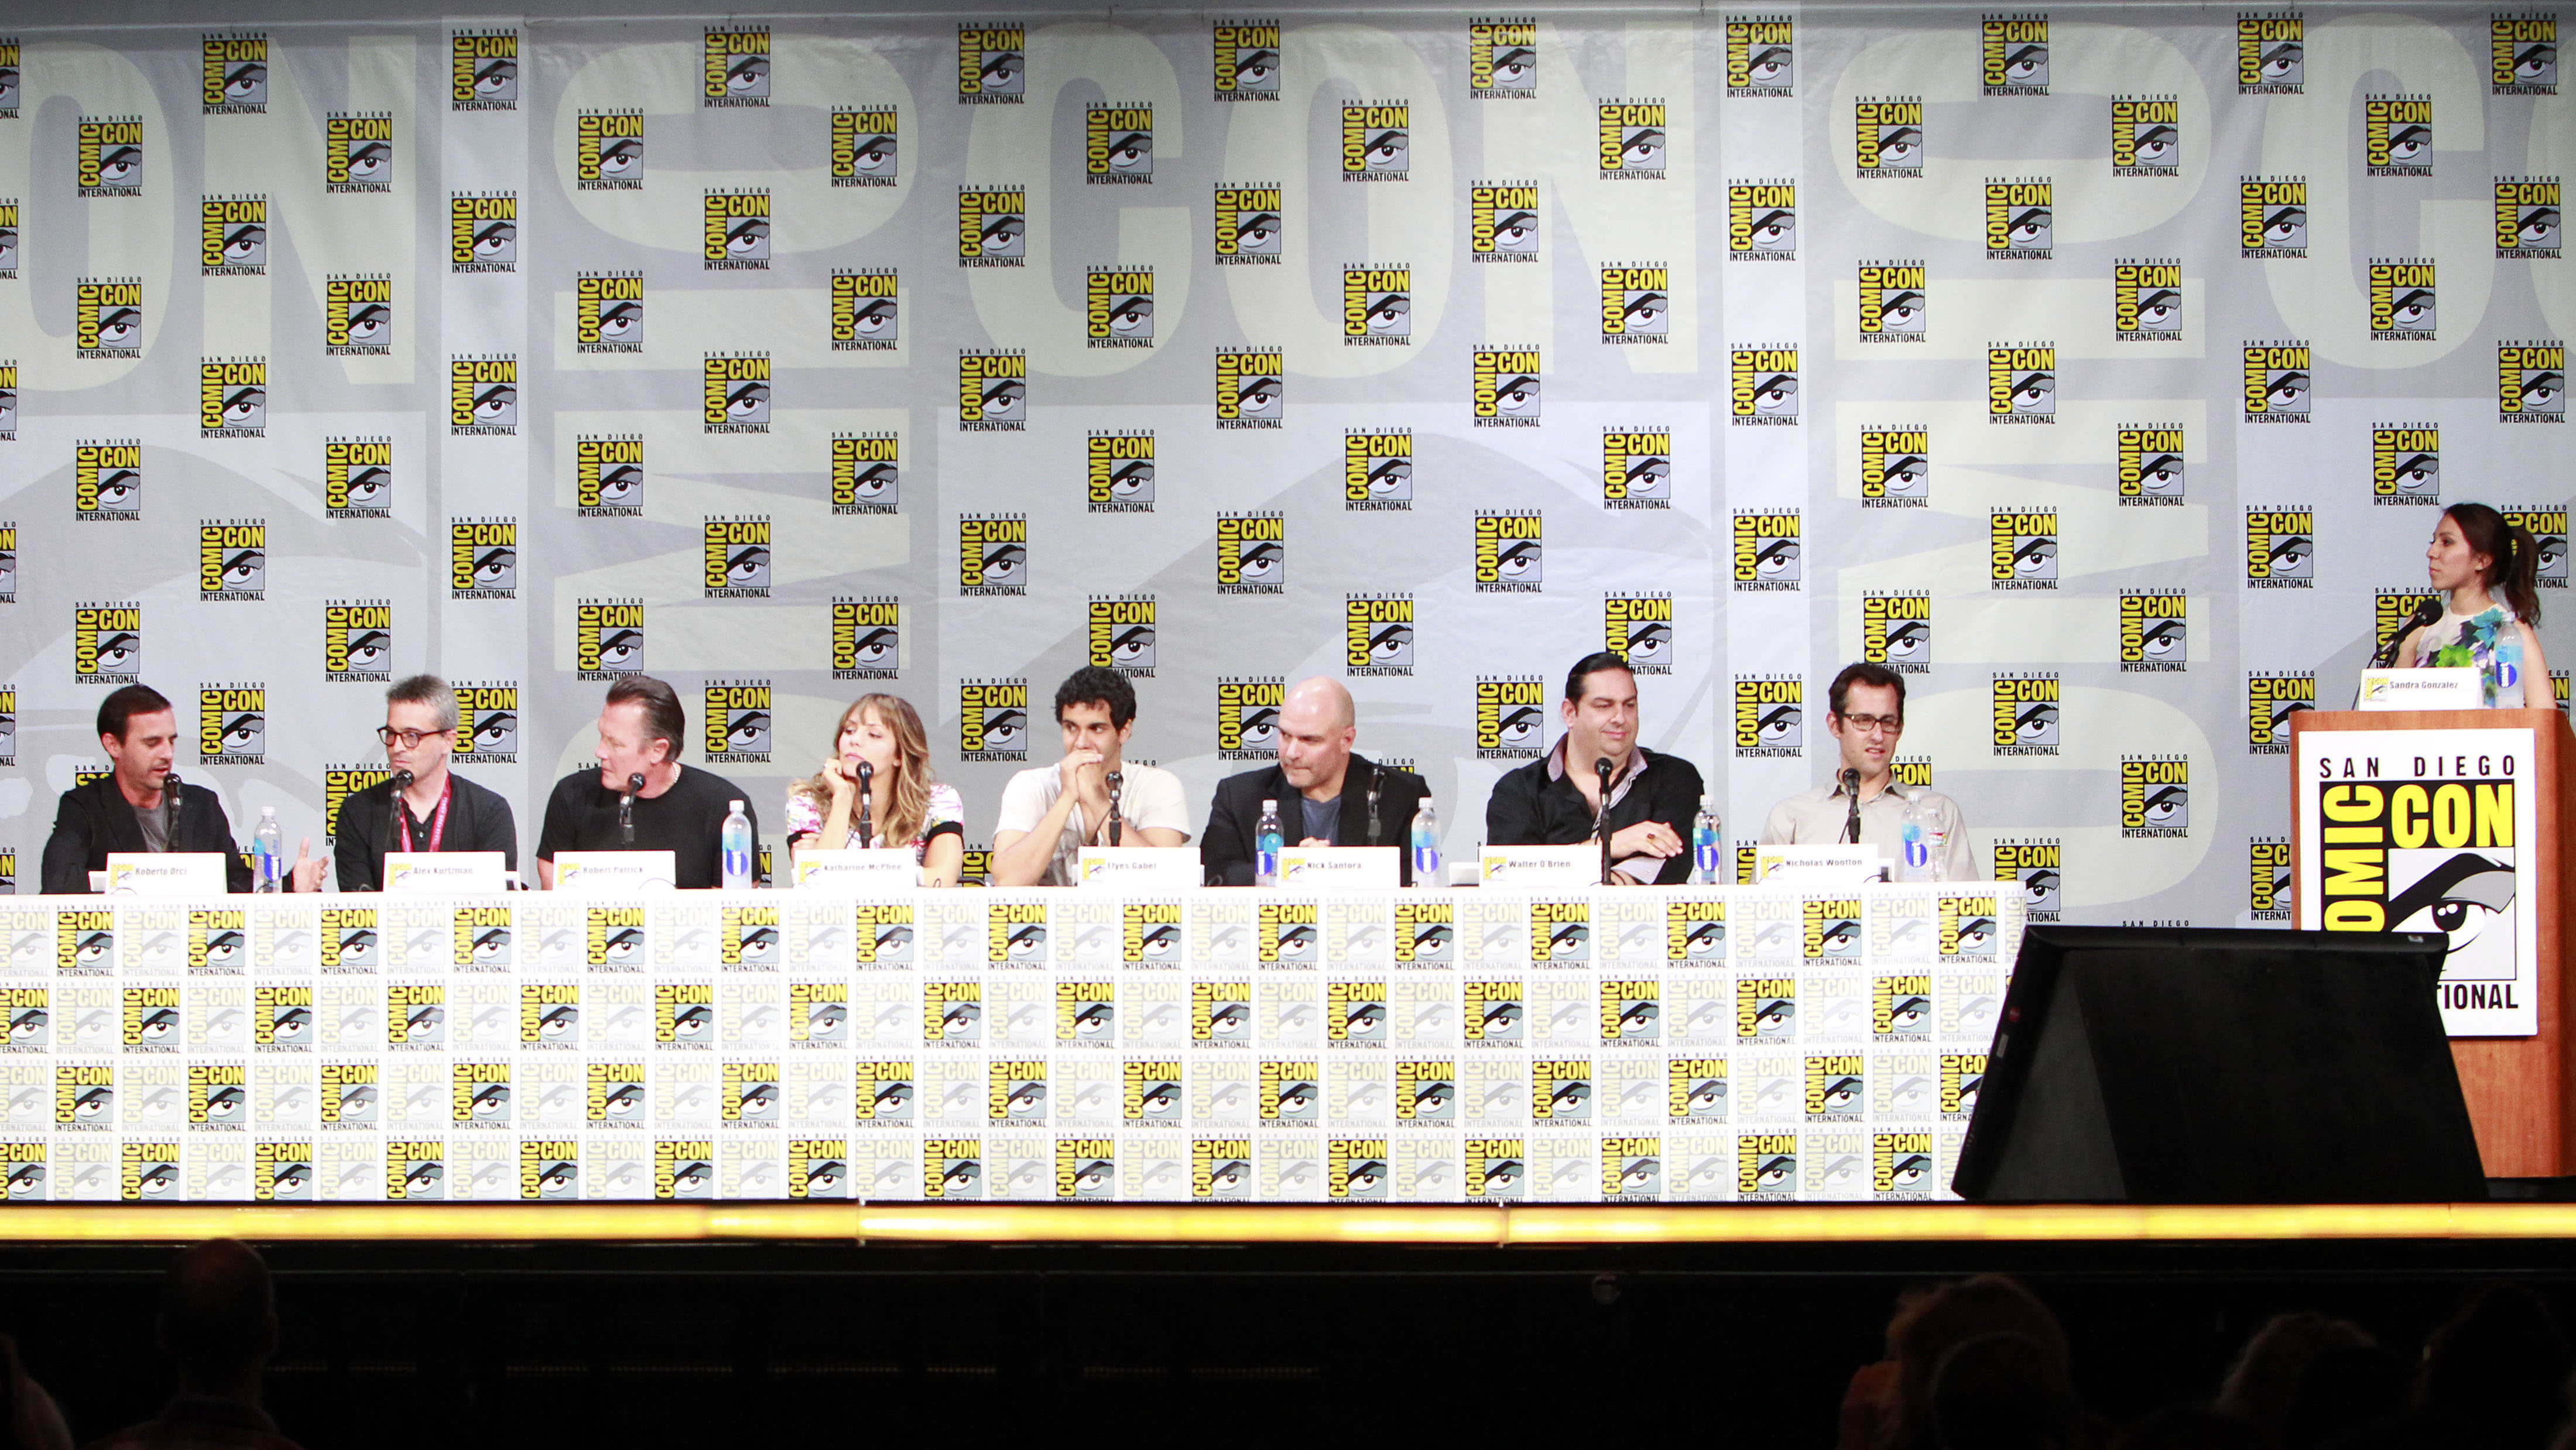 The Scorpion Comic-Con Panel